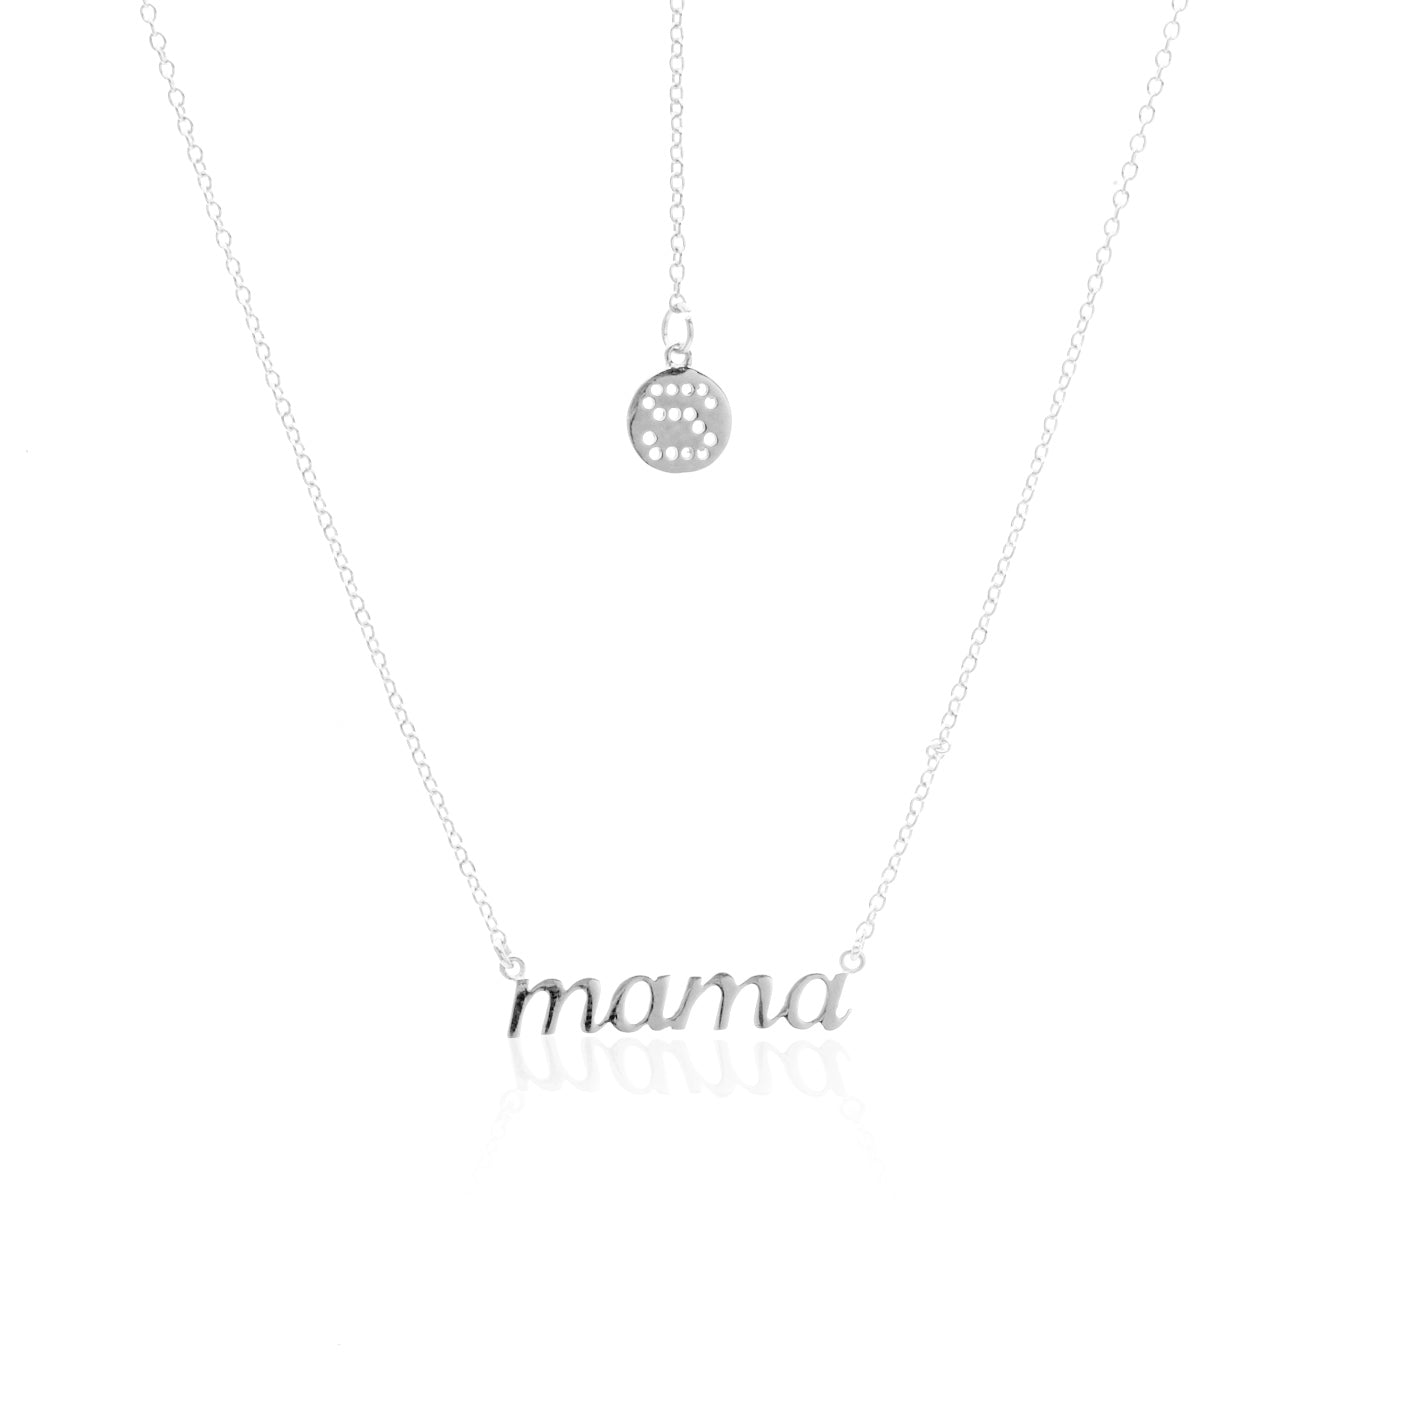 Silk & Steel Jewellery Superfine Mama Gold Sterling Silver Necklace